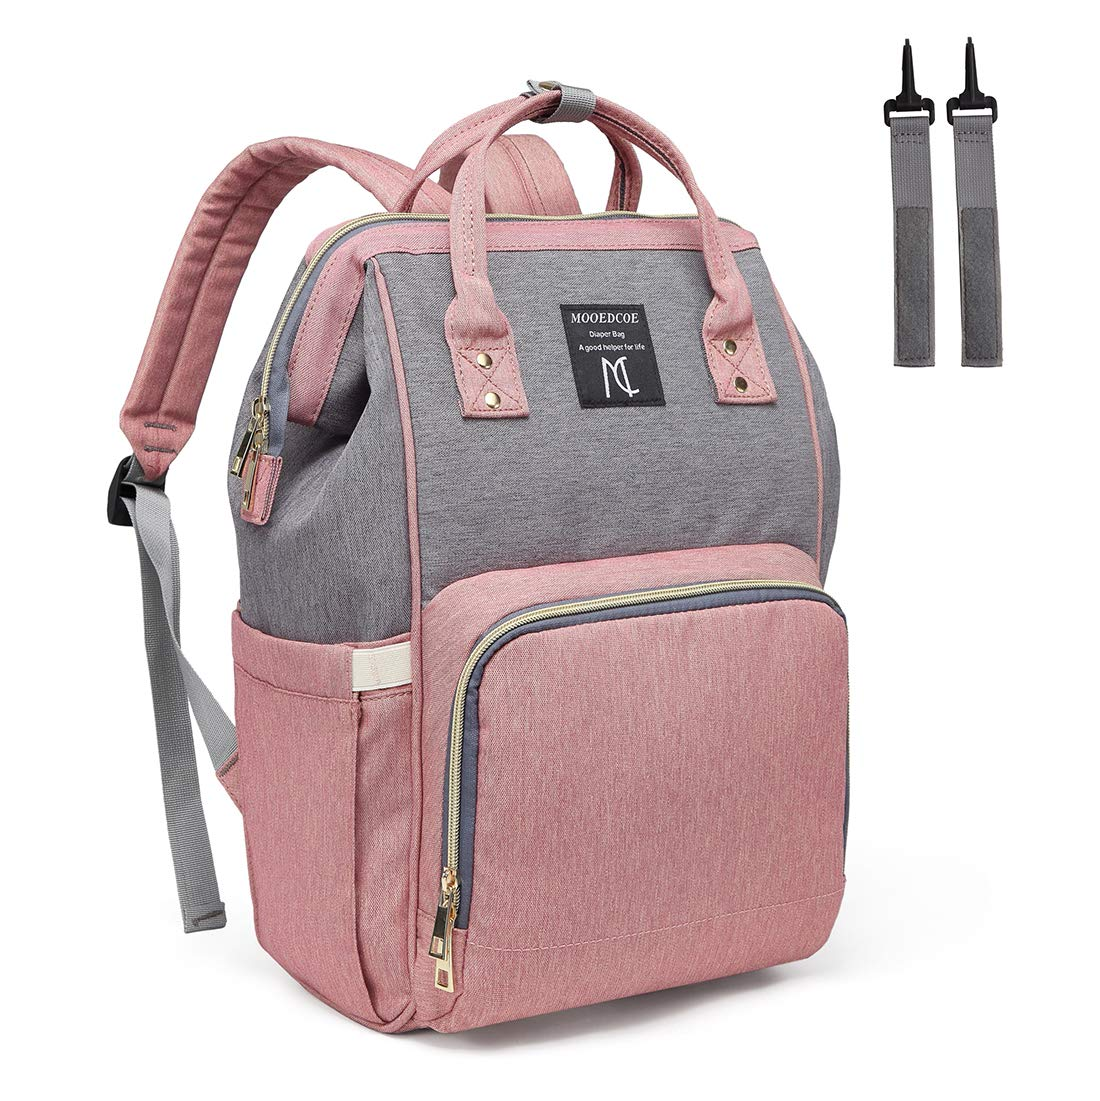 Mooedcoe Baby Nappy Changing Bag Rucksack Diaper Bag Nappy Changing Backpack  for Mom and Dad (Pink)  Amazon.co.uk  Baby caa94e8d054a2